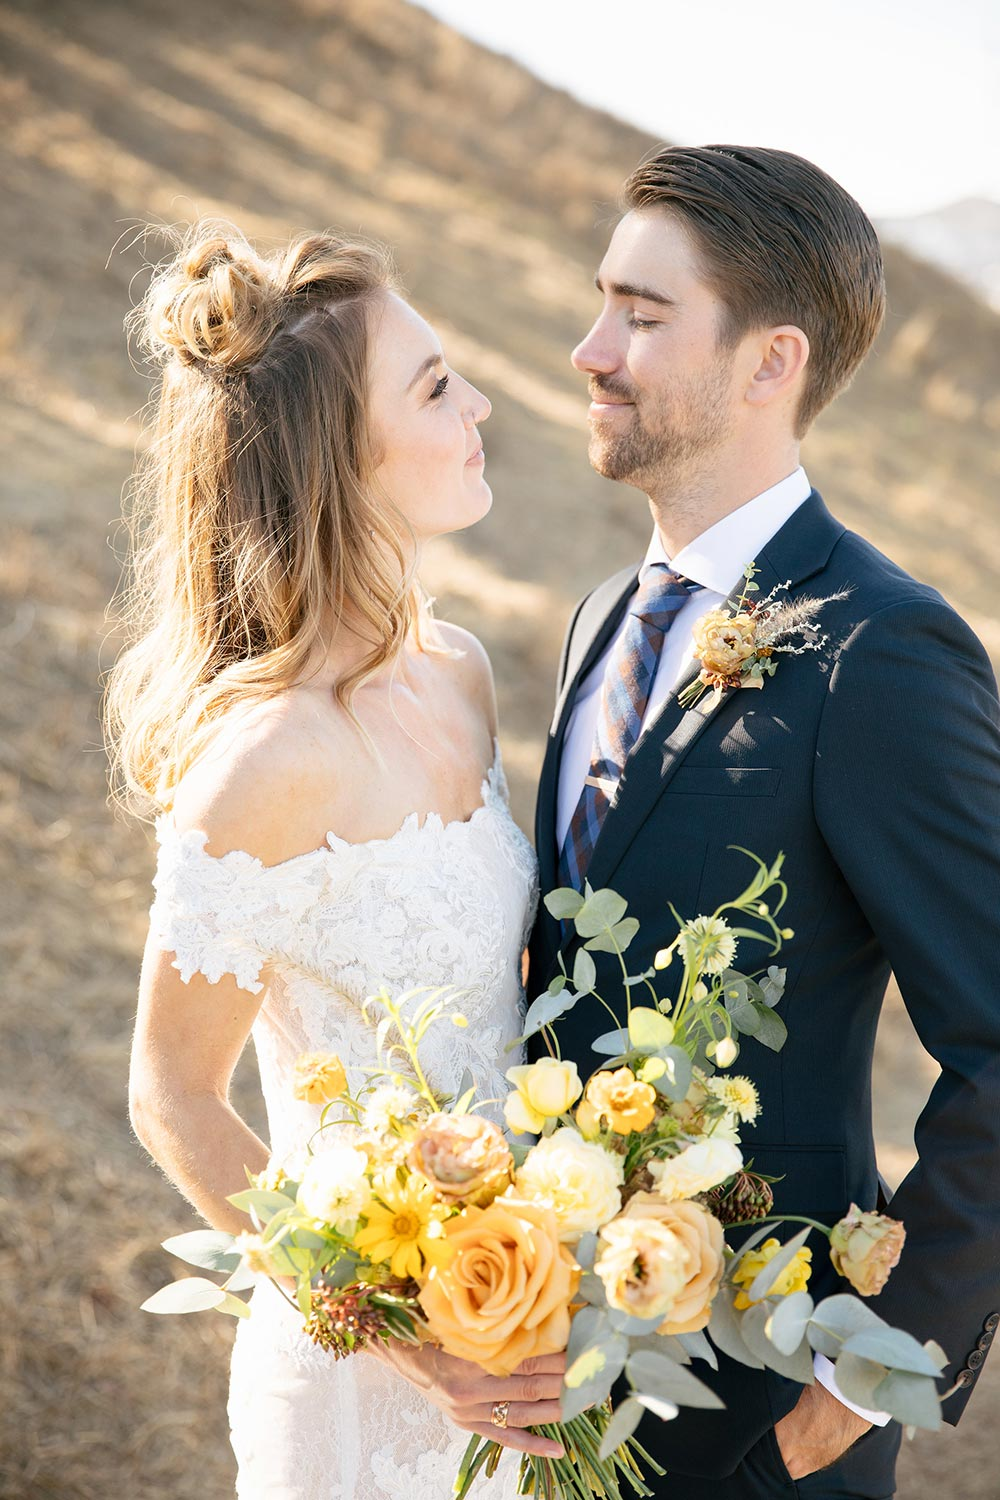 off-the-shoulder lace wedding dress and boho bridal hairstyle half up half down